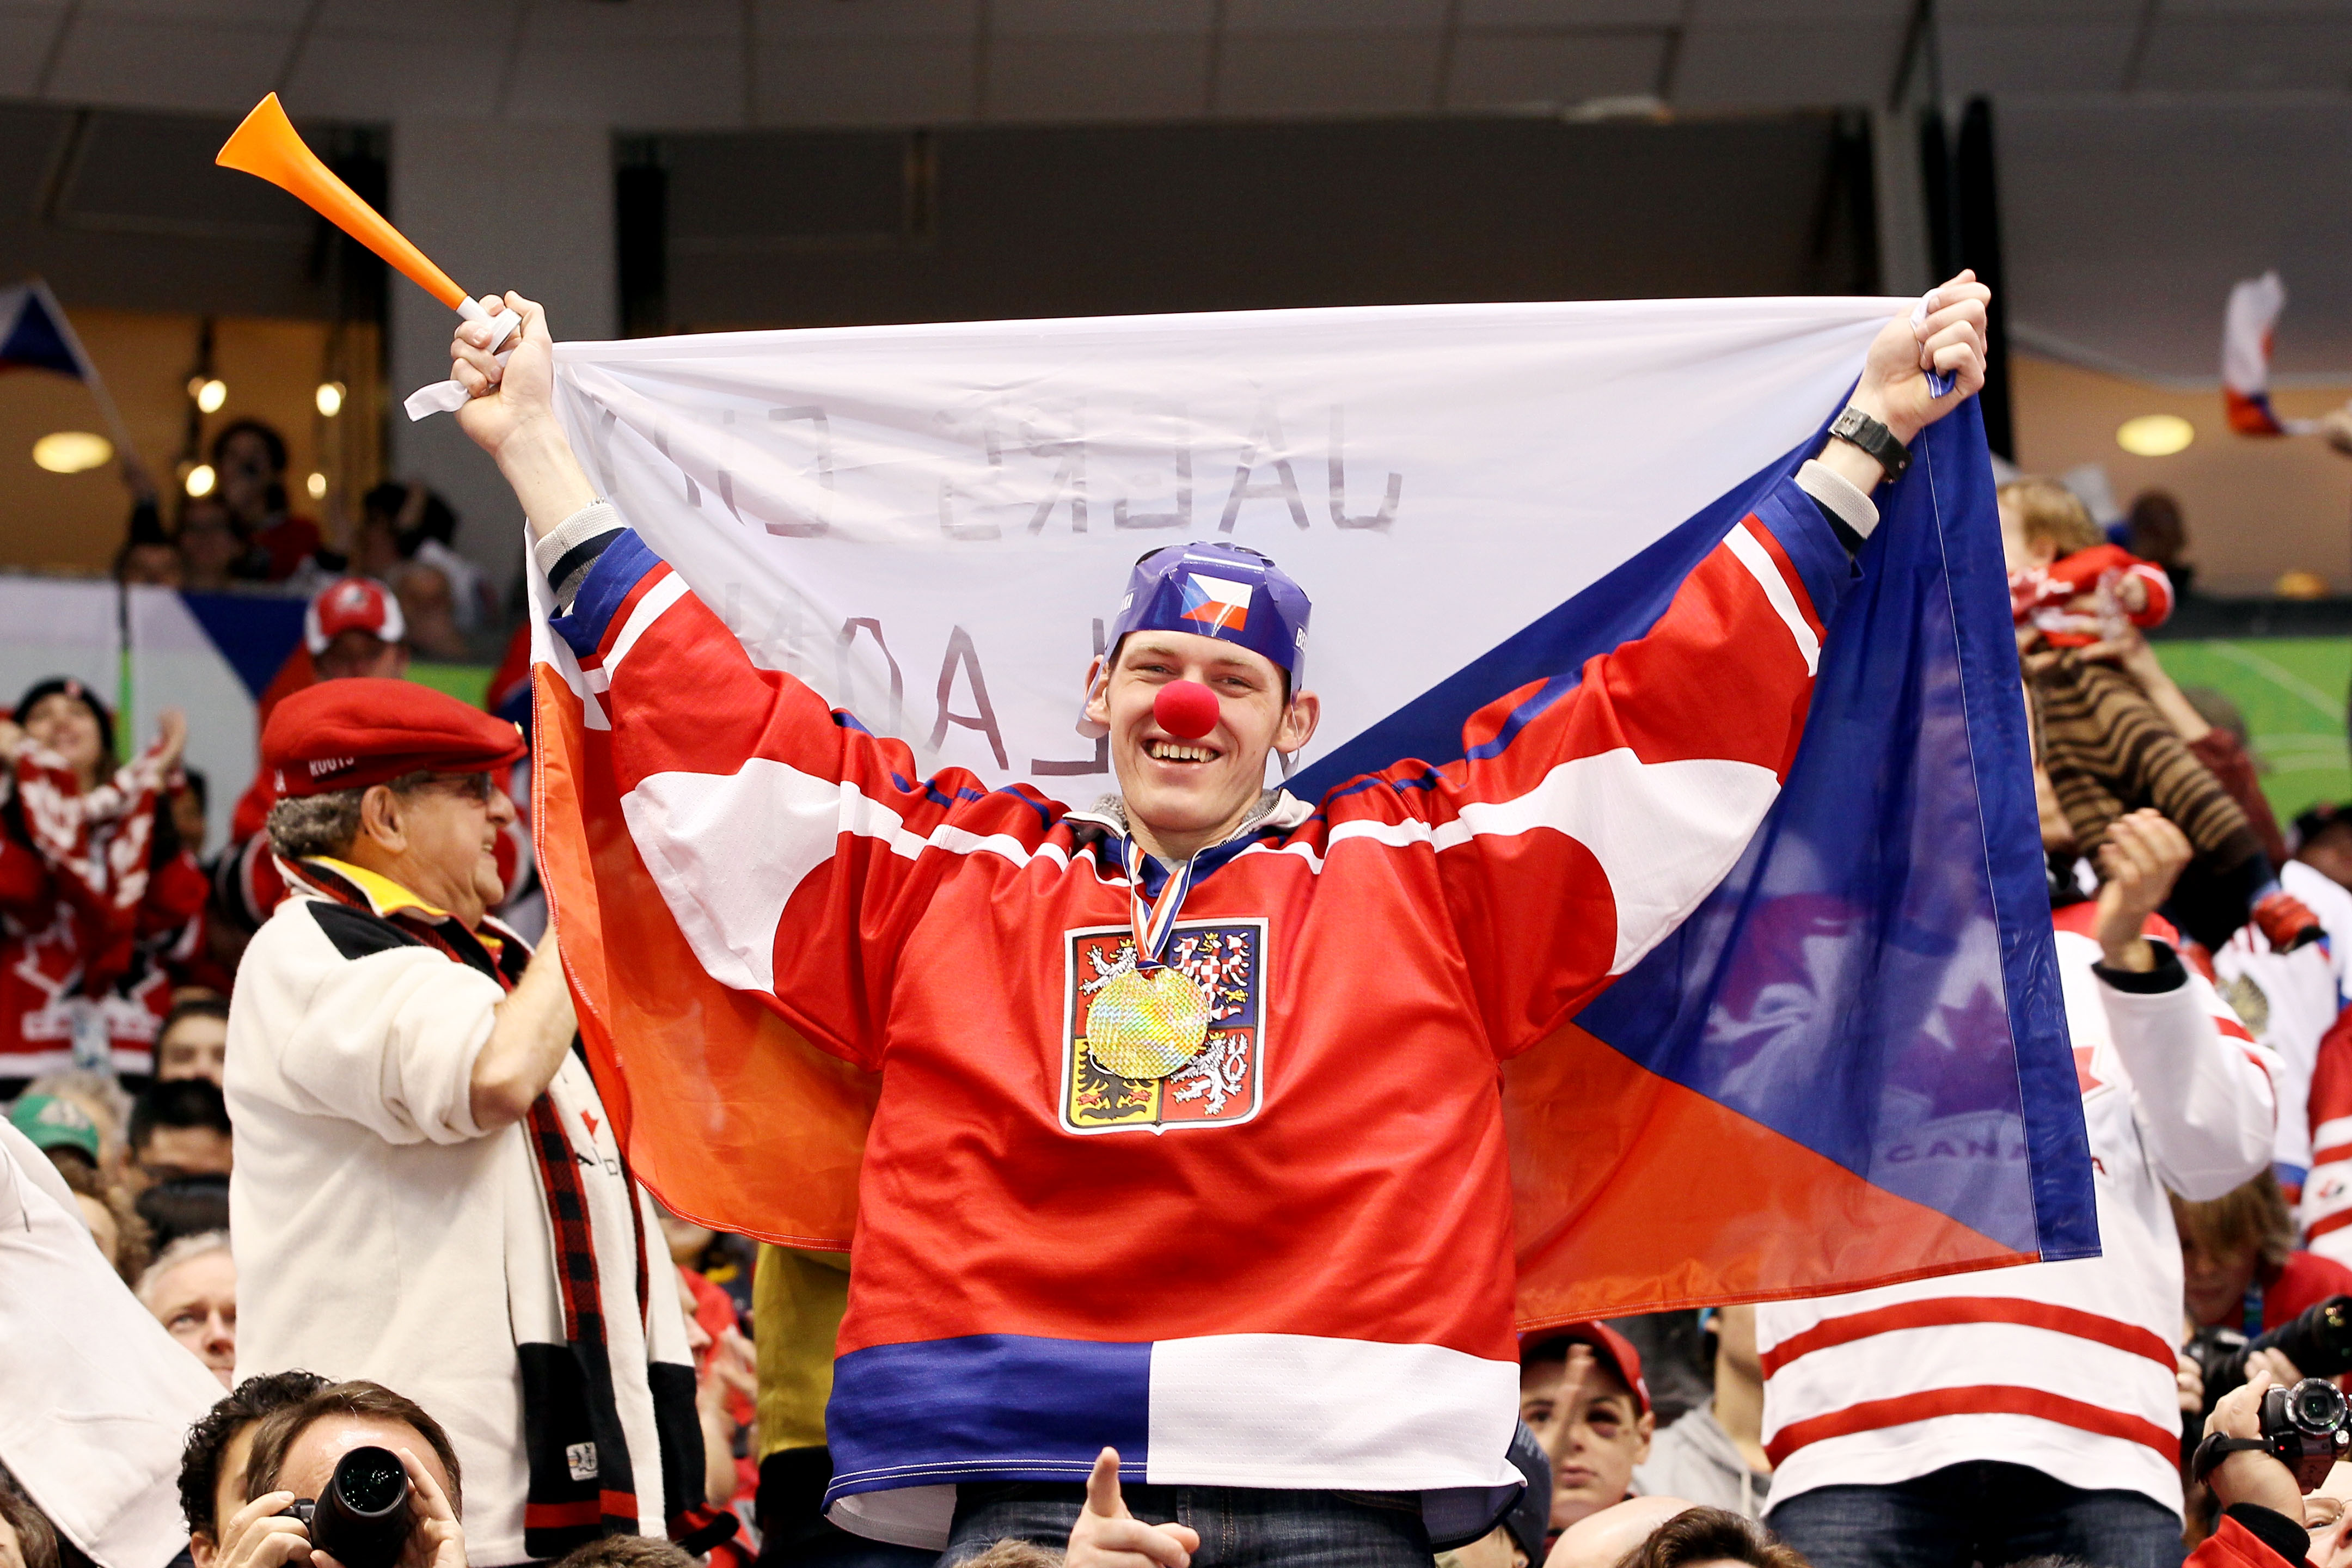 VANCOUVER, BC - FEBRUARY 21:  A fan of the Czech Republic holds up the countries flag as he supports the team during the ice hockey men's against the Russia Federation team on day 10 of the Vancouver 2010 Winter Olympics at Canada Hockey Place on February